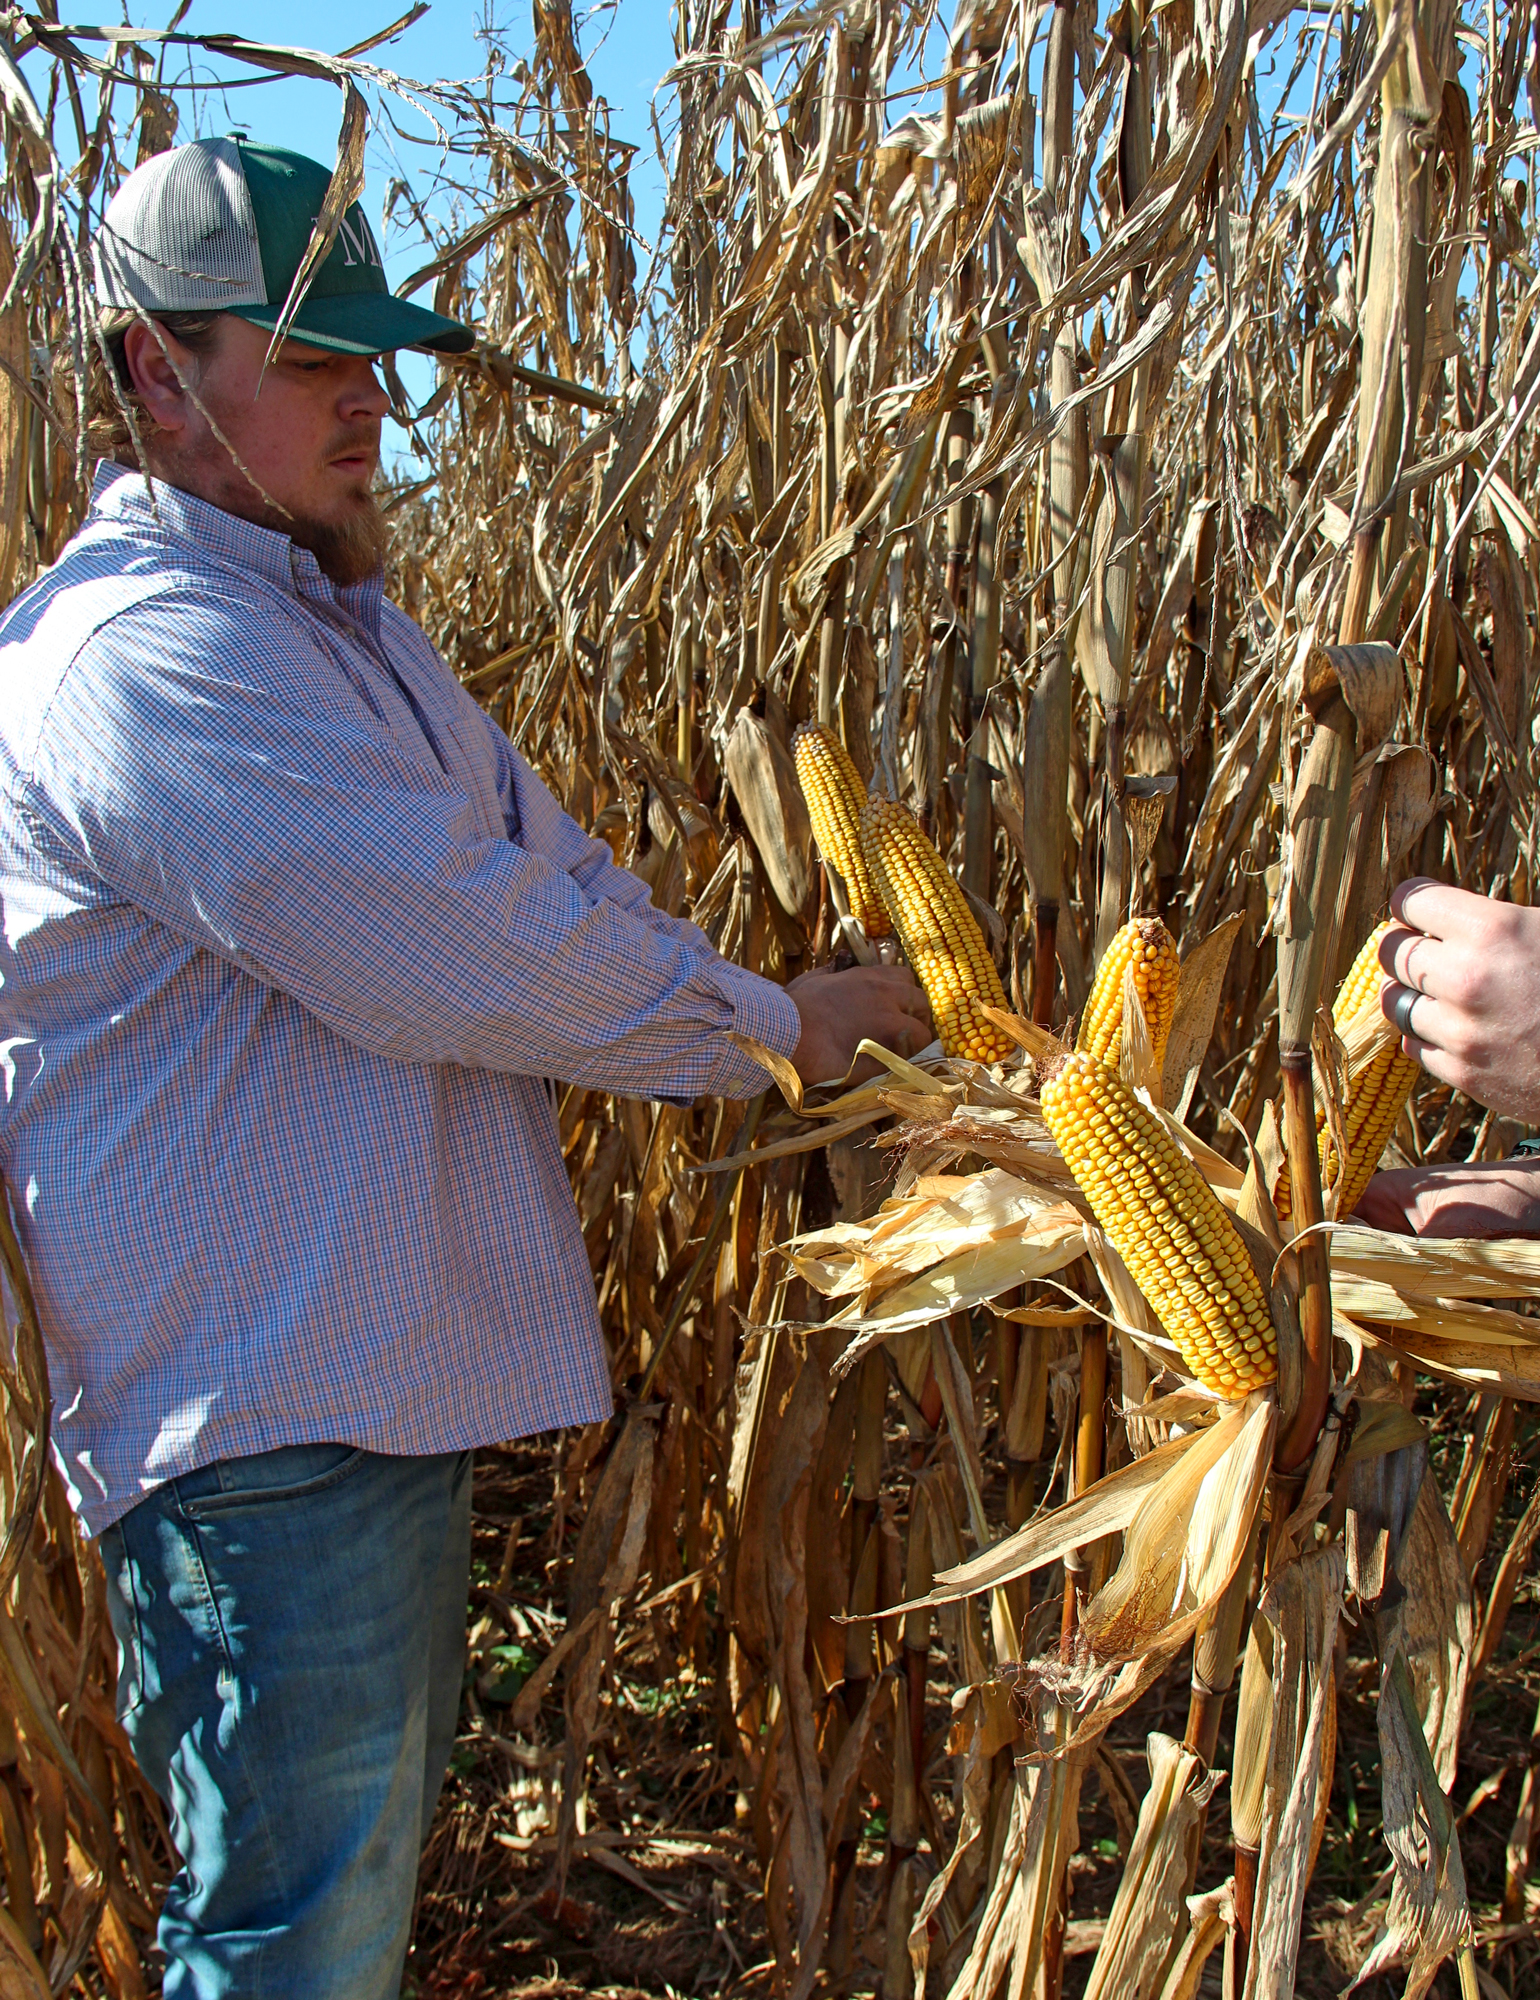 Mike Kurek inspects corn in his field